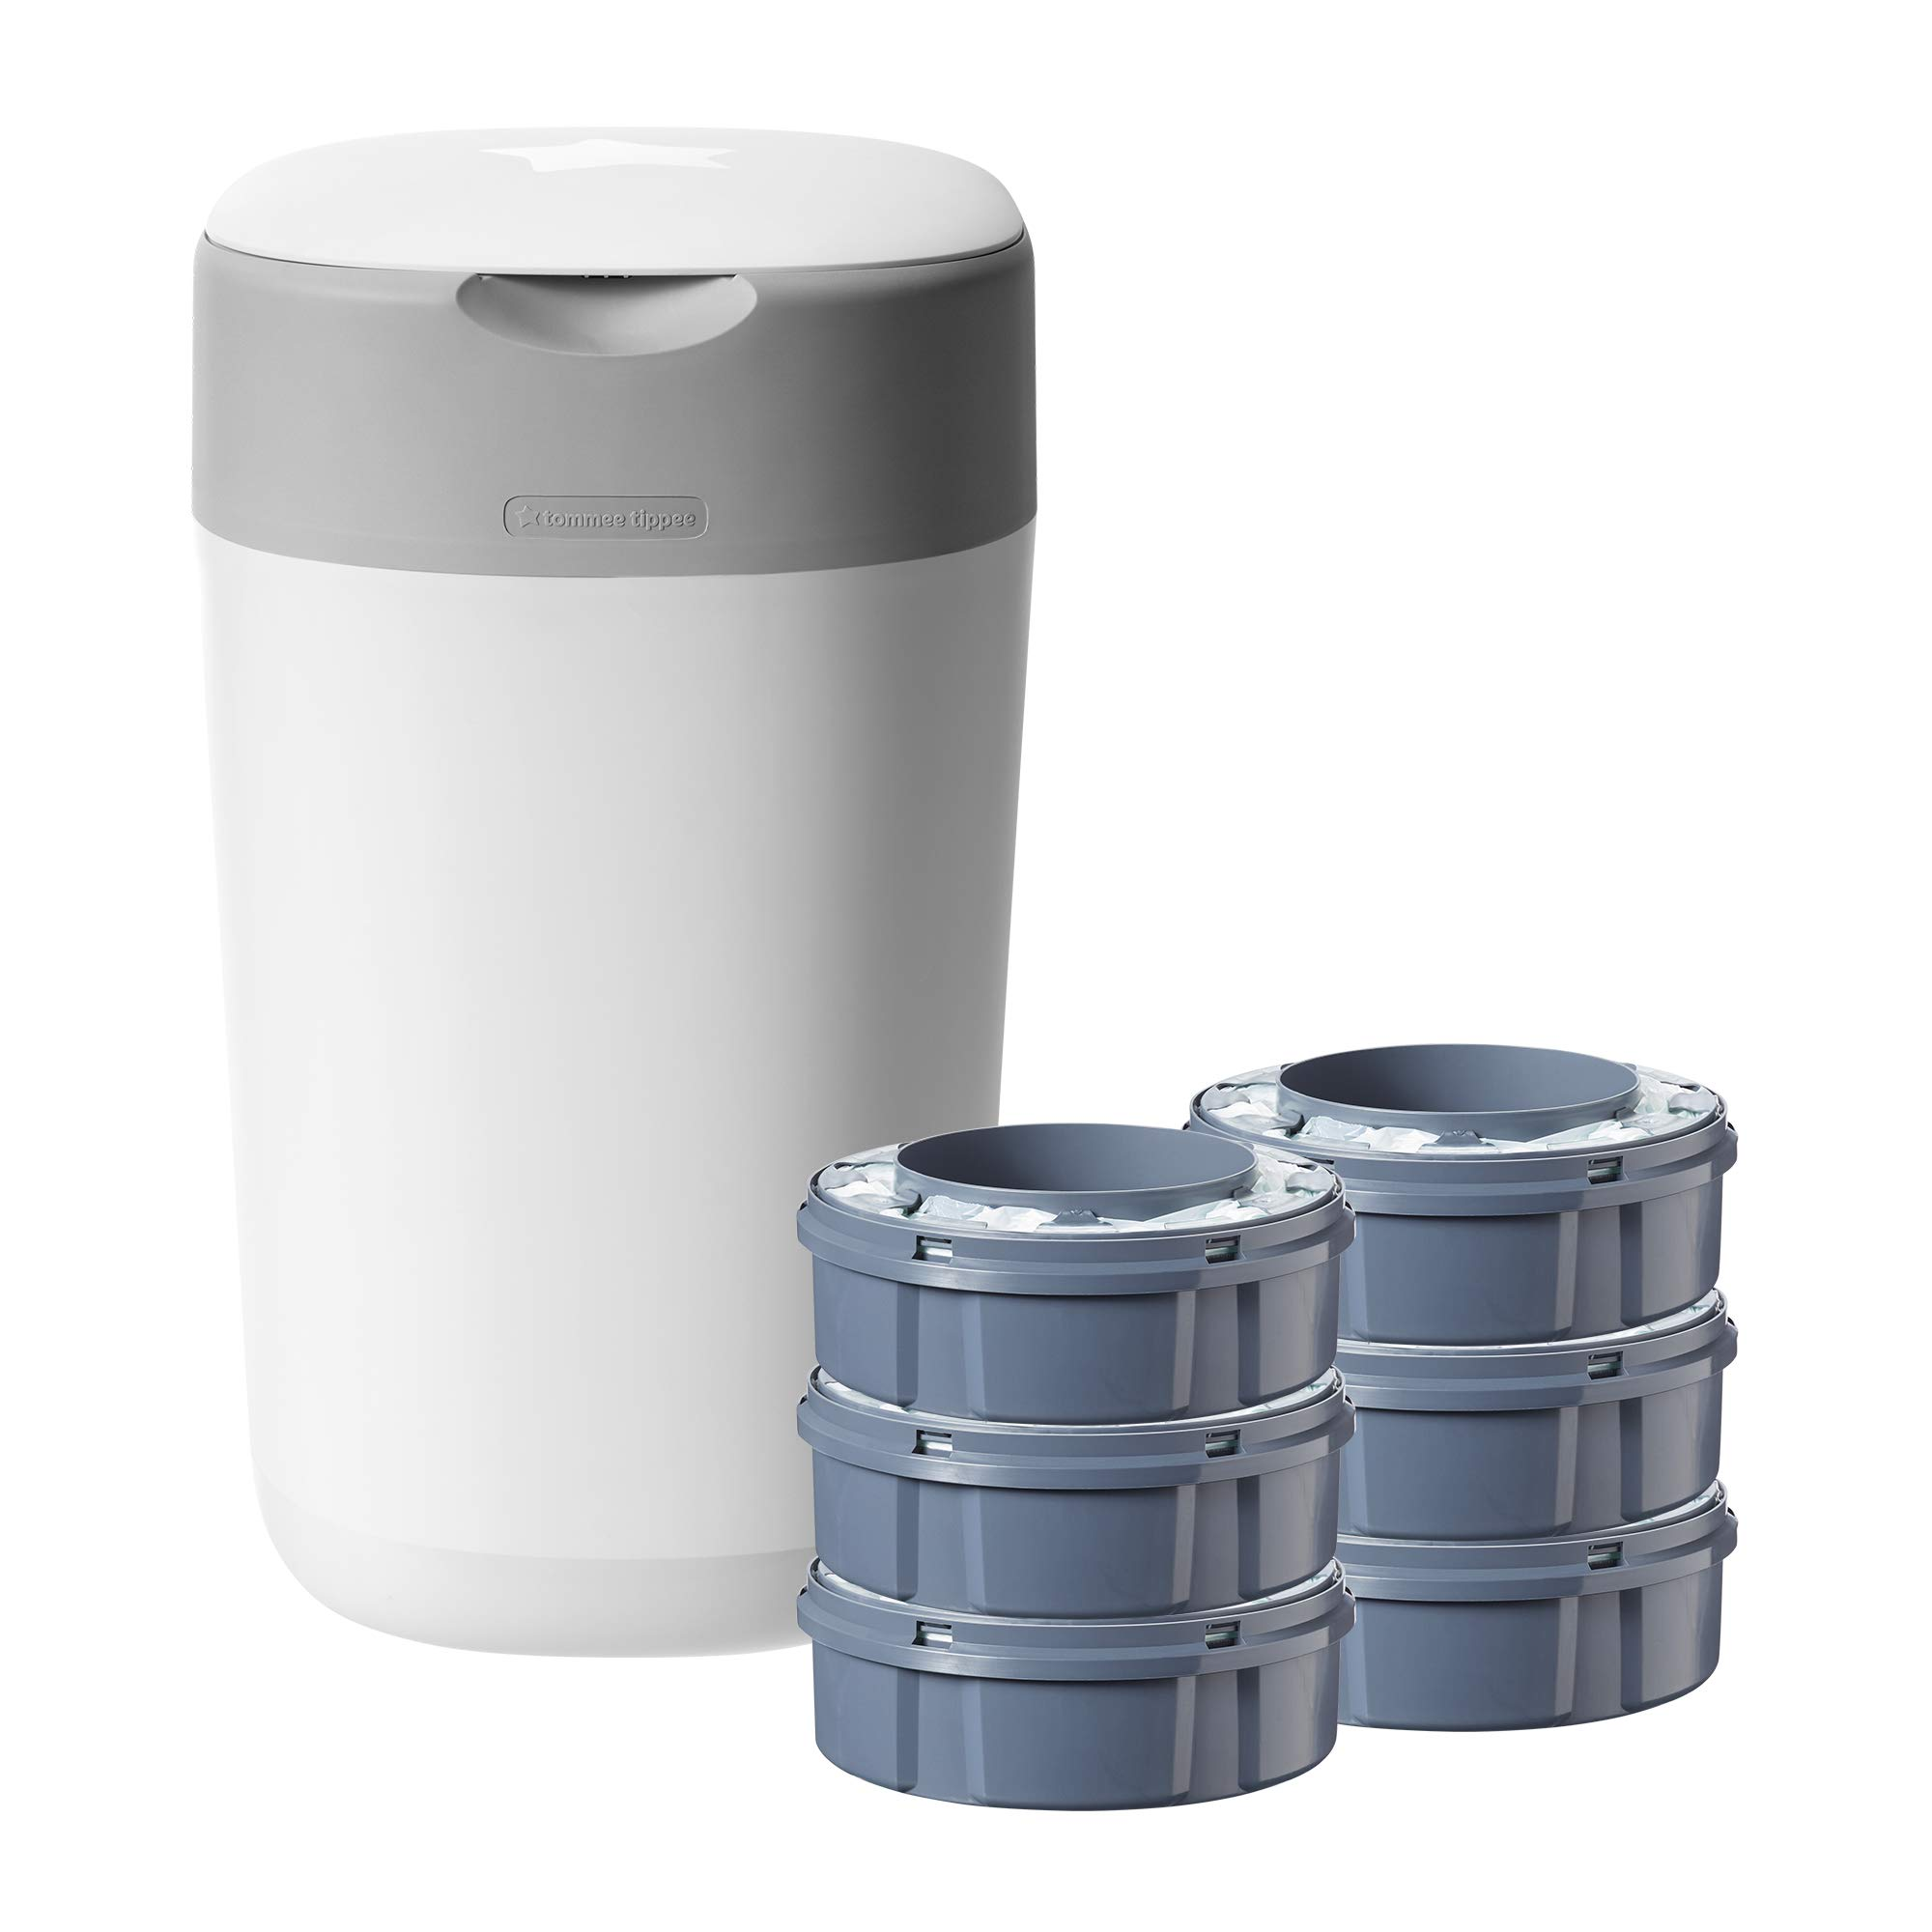 Tommee Tippee Sangenic Sistema avanzado para desechar pañales Twist & Click, Starter Pack product image